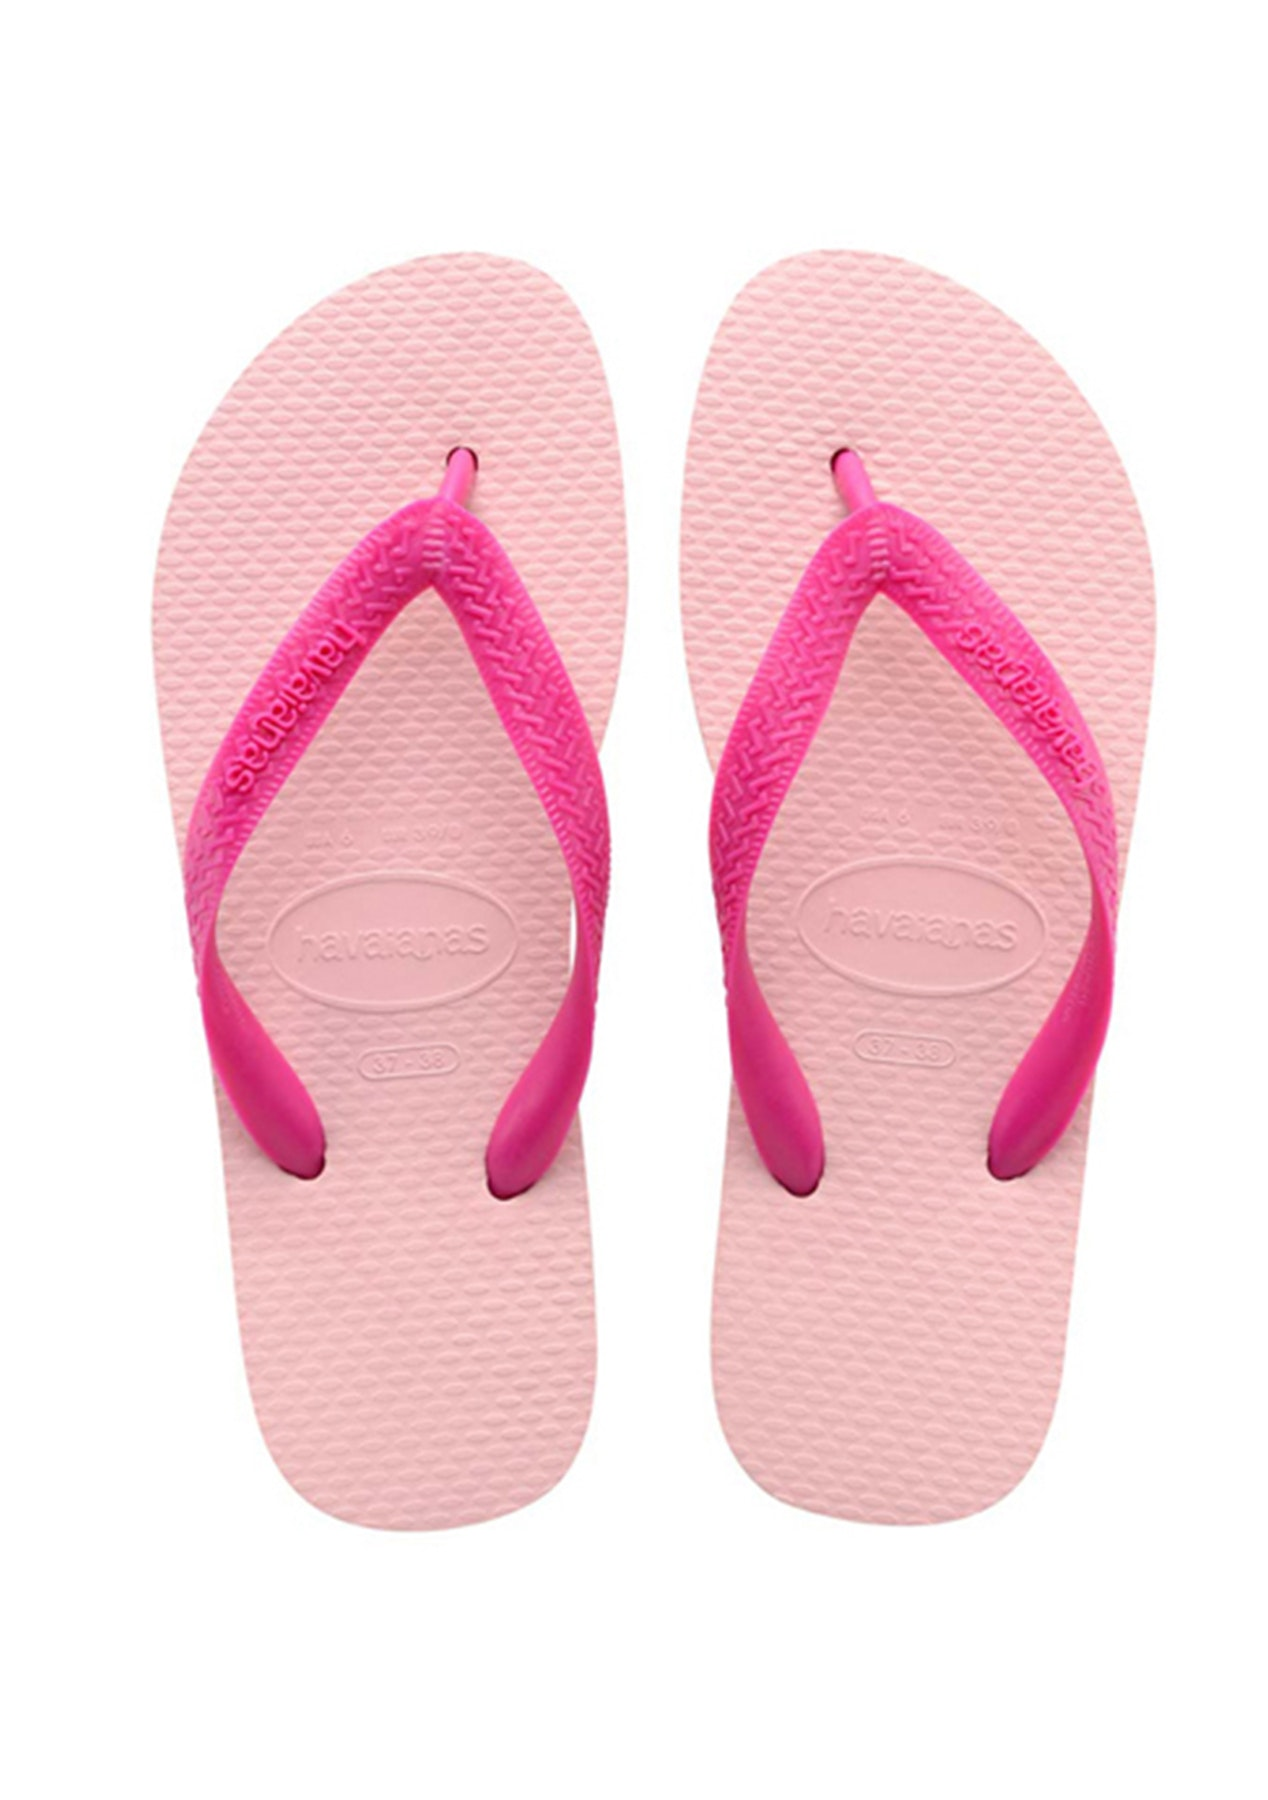 644a5ed68ba441 Havaianas - Color Mix 6615 Pearl Pink - Ipanema Havaianas Clearance - Onceit